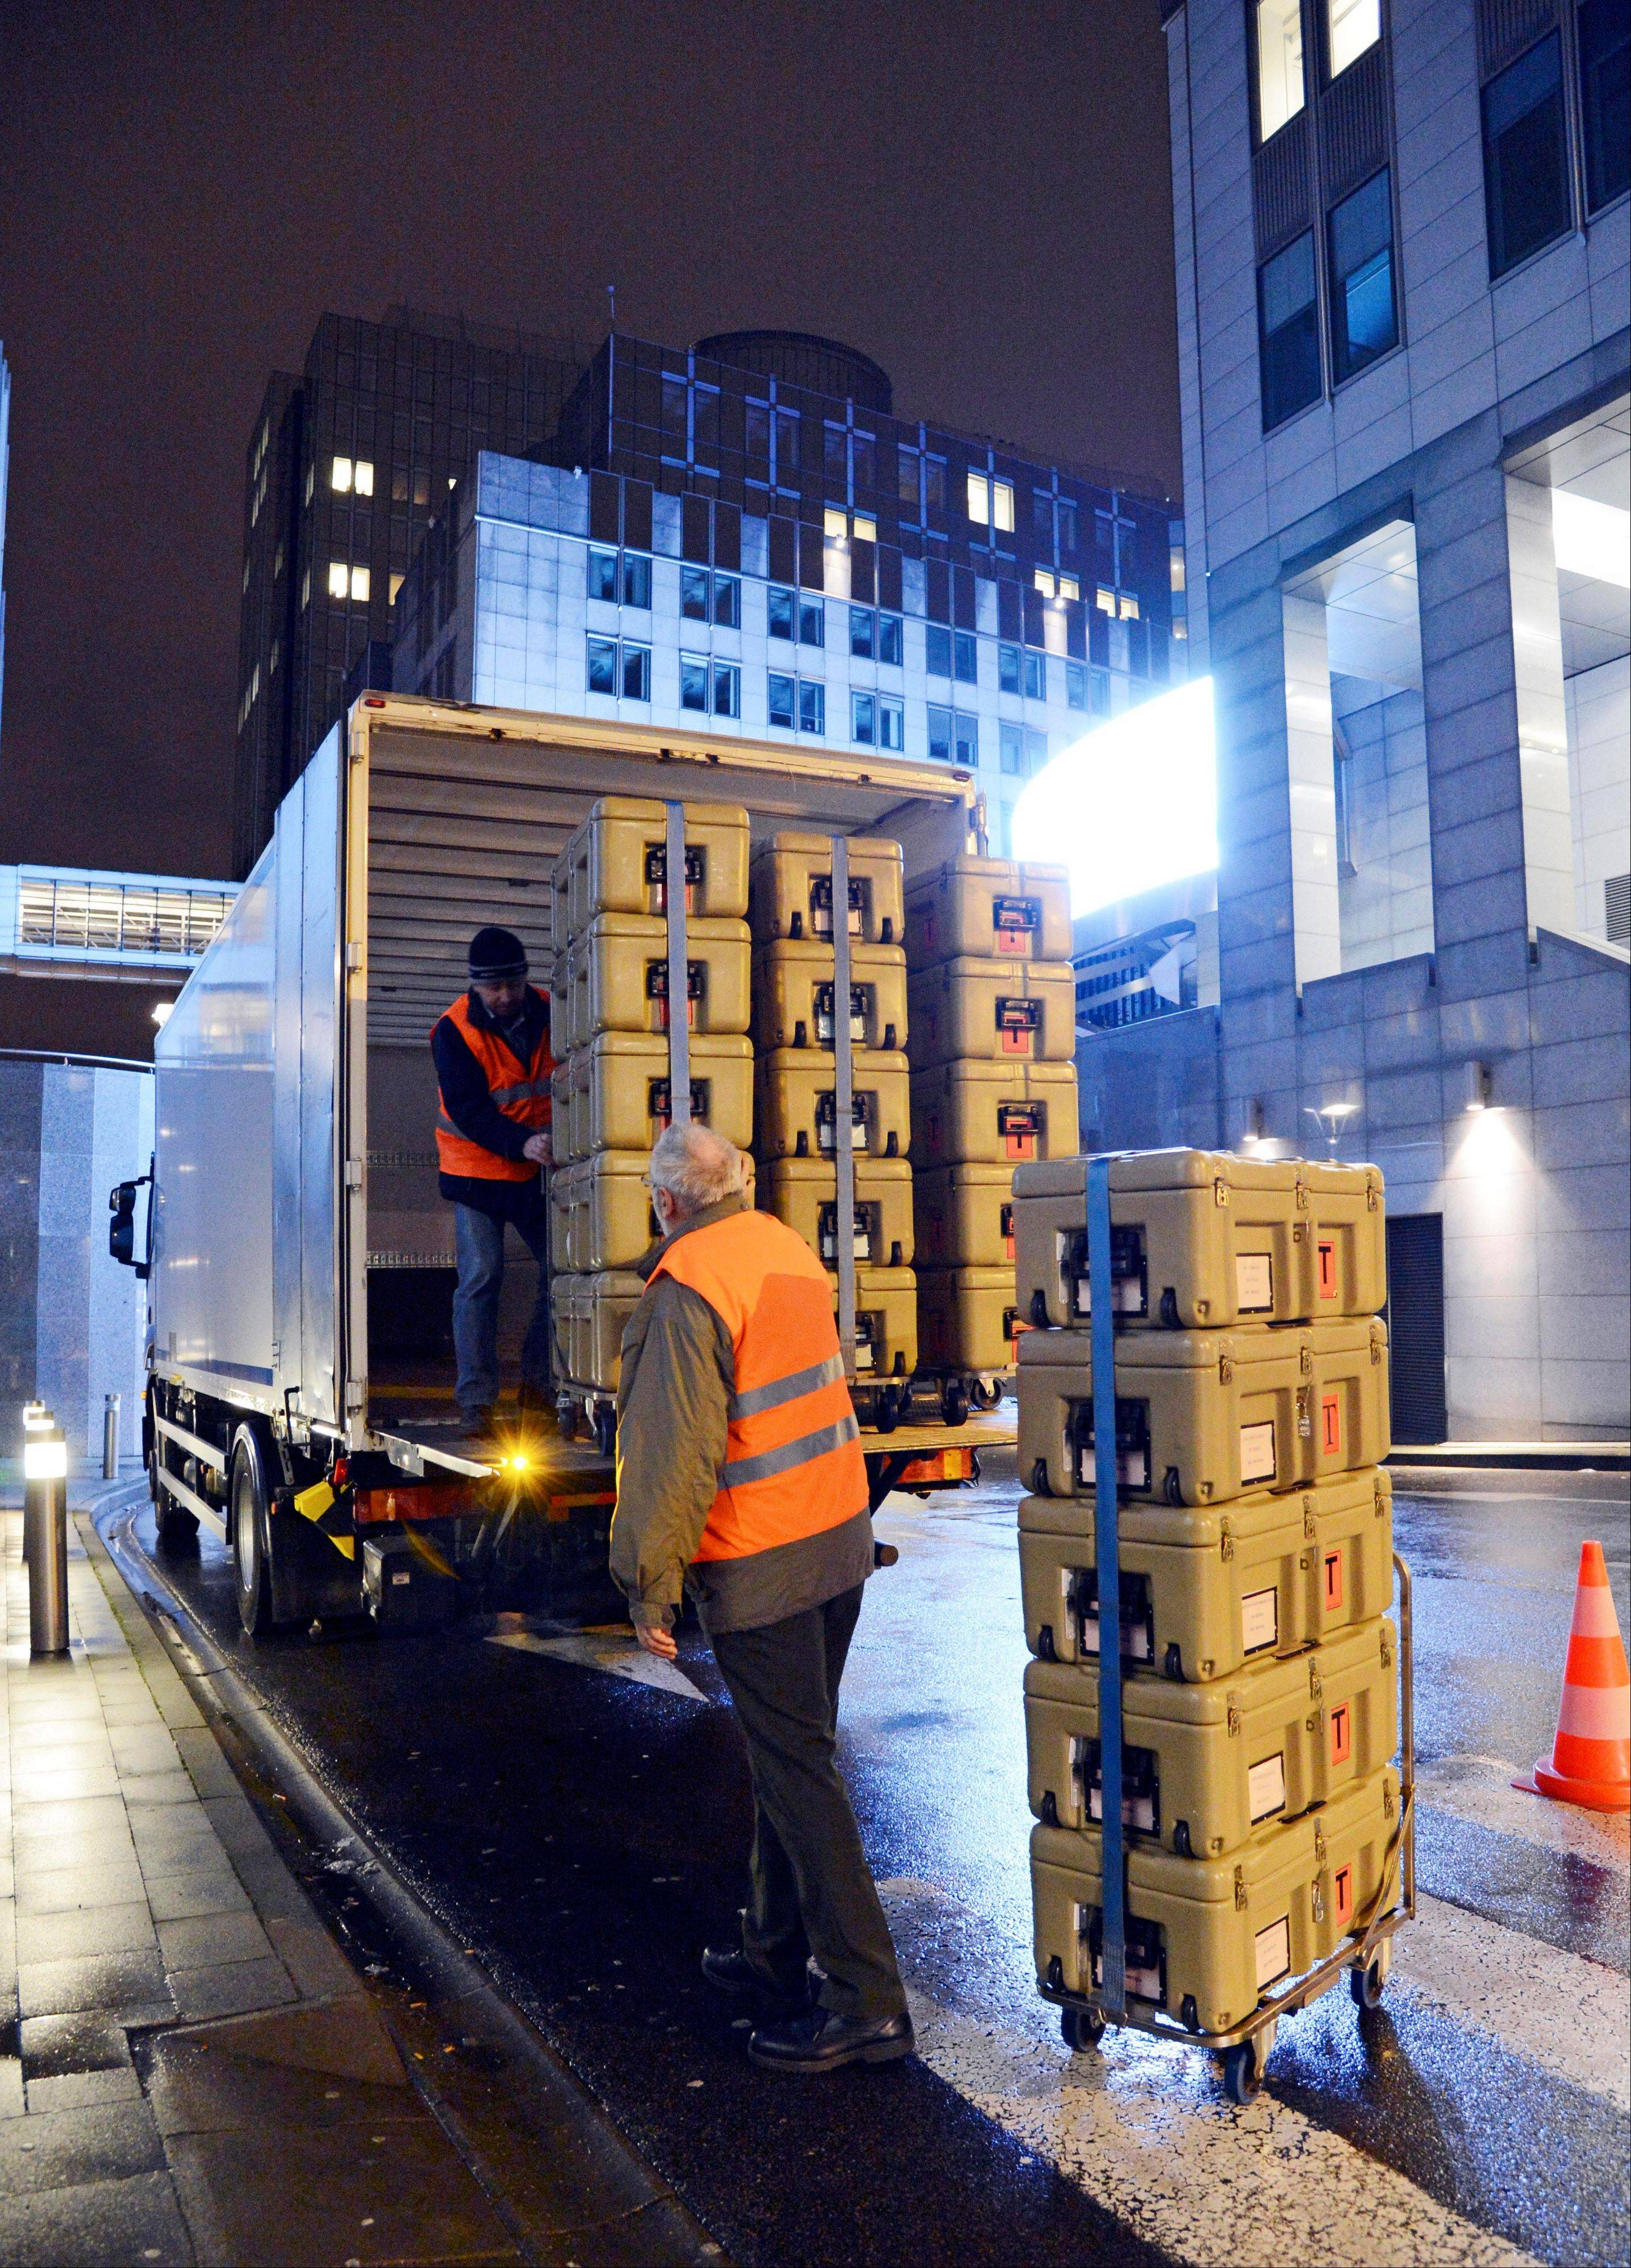 Workmen load boxes onto a truck outside the European Parliament building, in Brussels on Friday, Feb. 1, 2013, ready for transportation to Strasbourg in France.